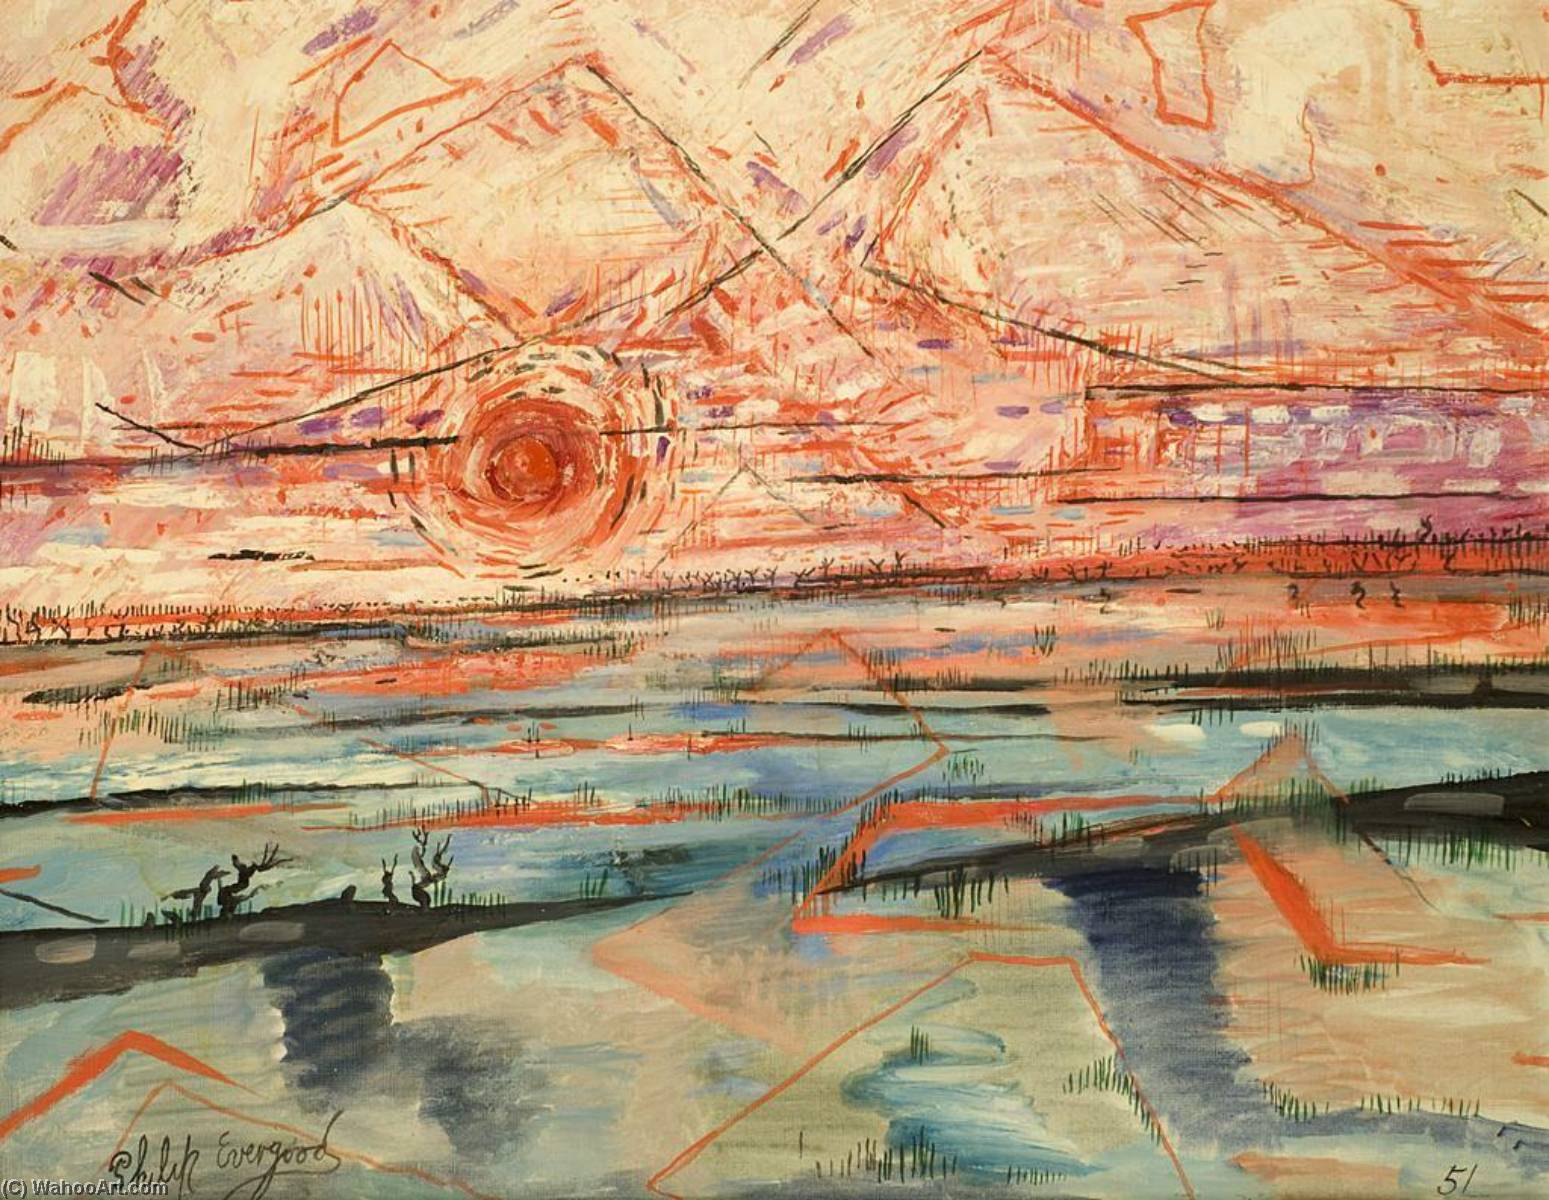 Sunset, Oil On Canvas by Philip Evergood (1901-1973)